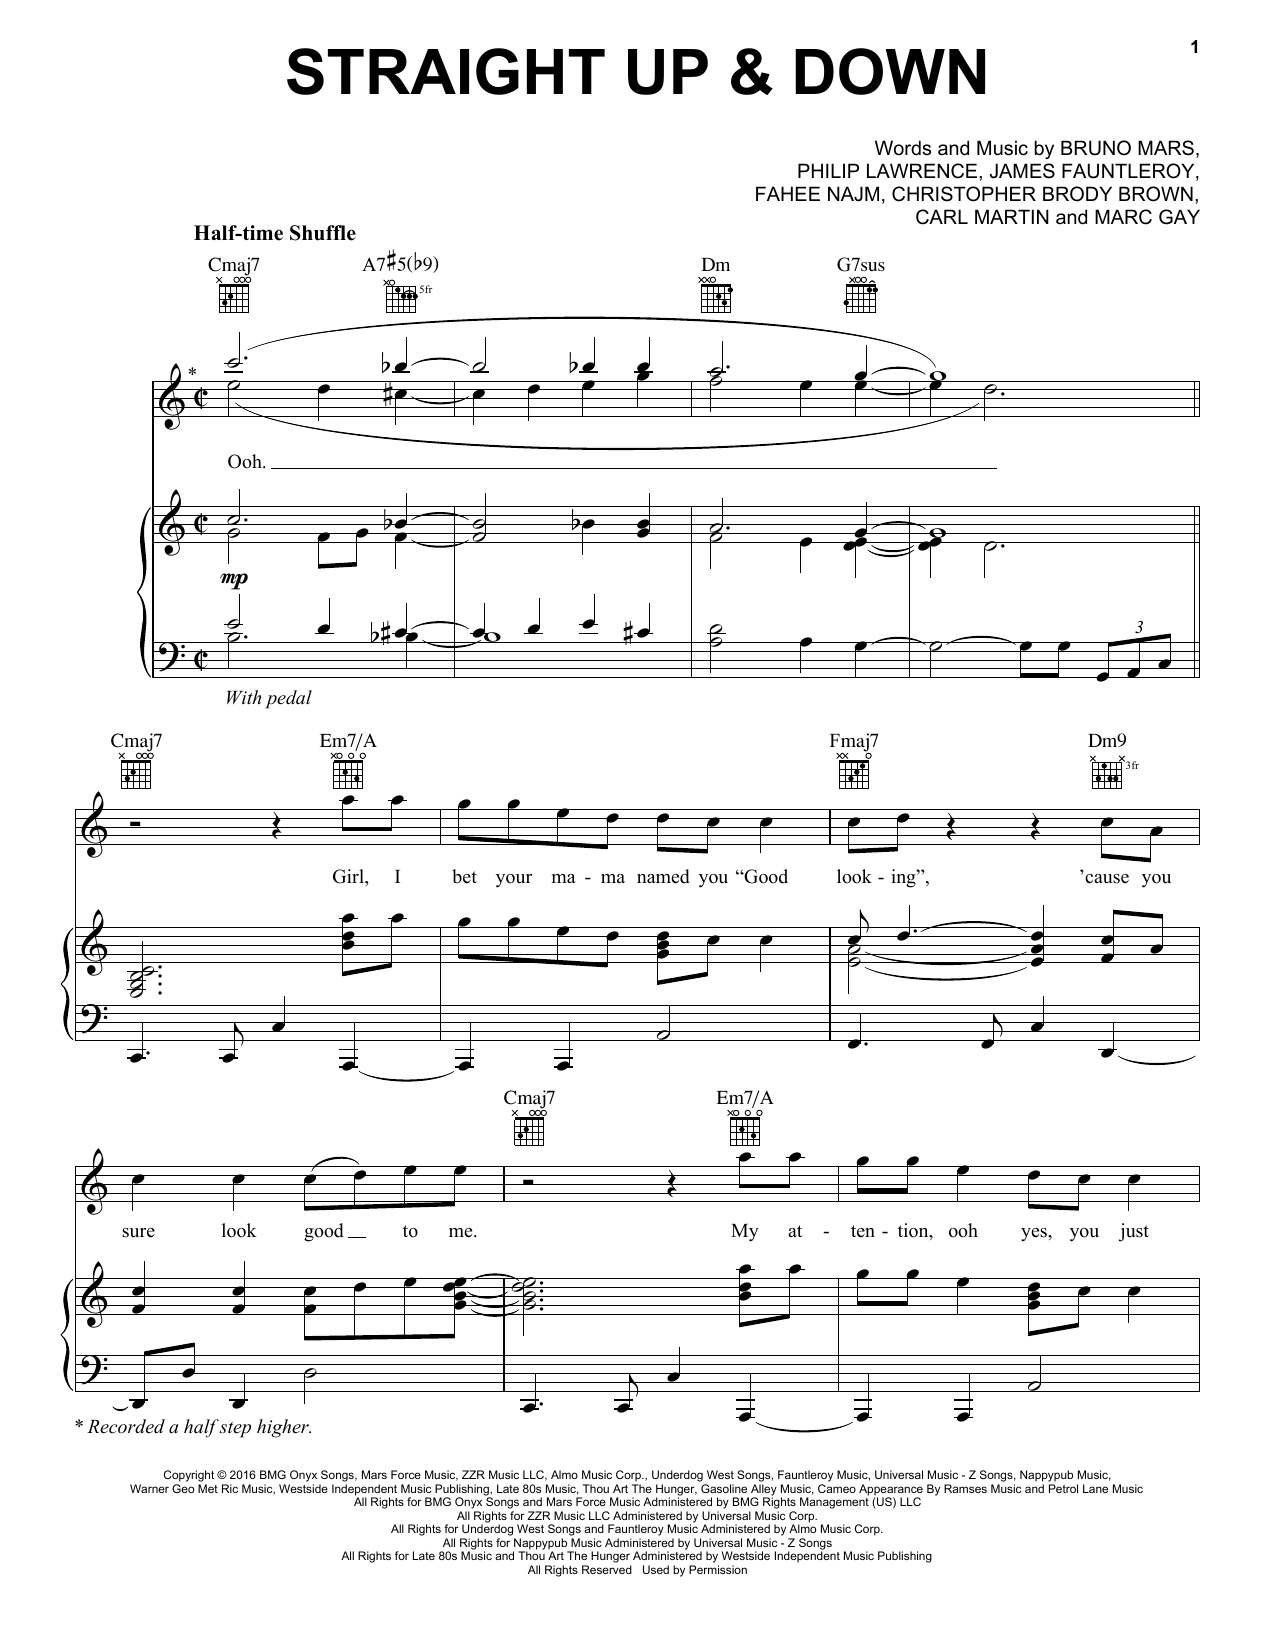 Bruno Mars Straight Up & Down sheet music notes and chords